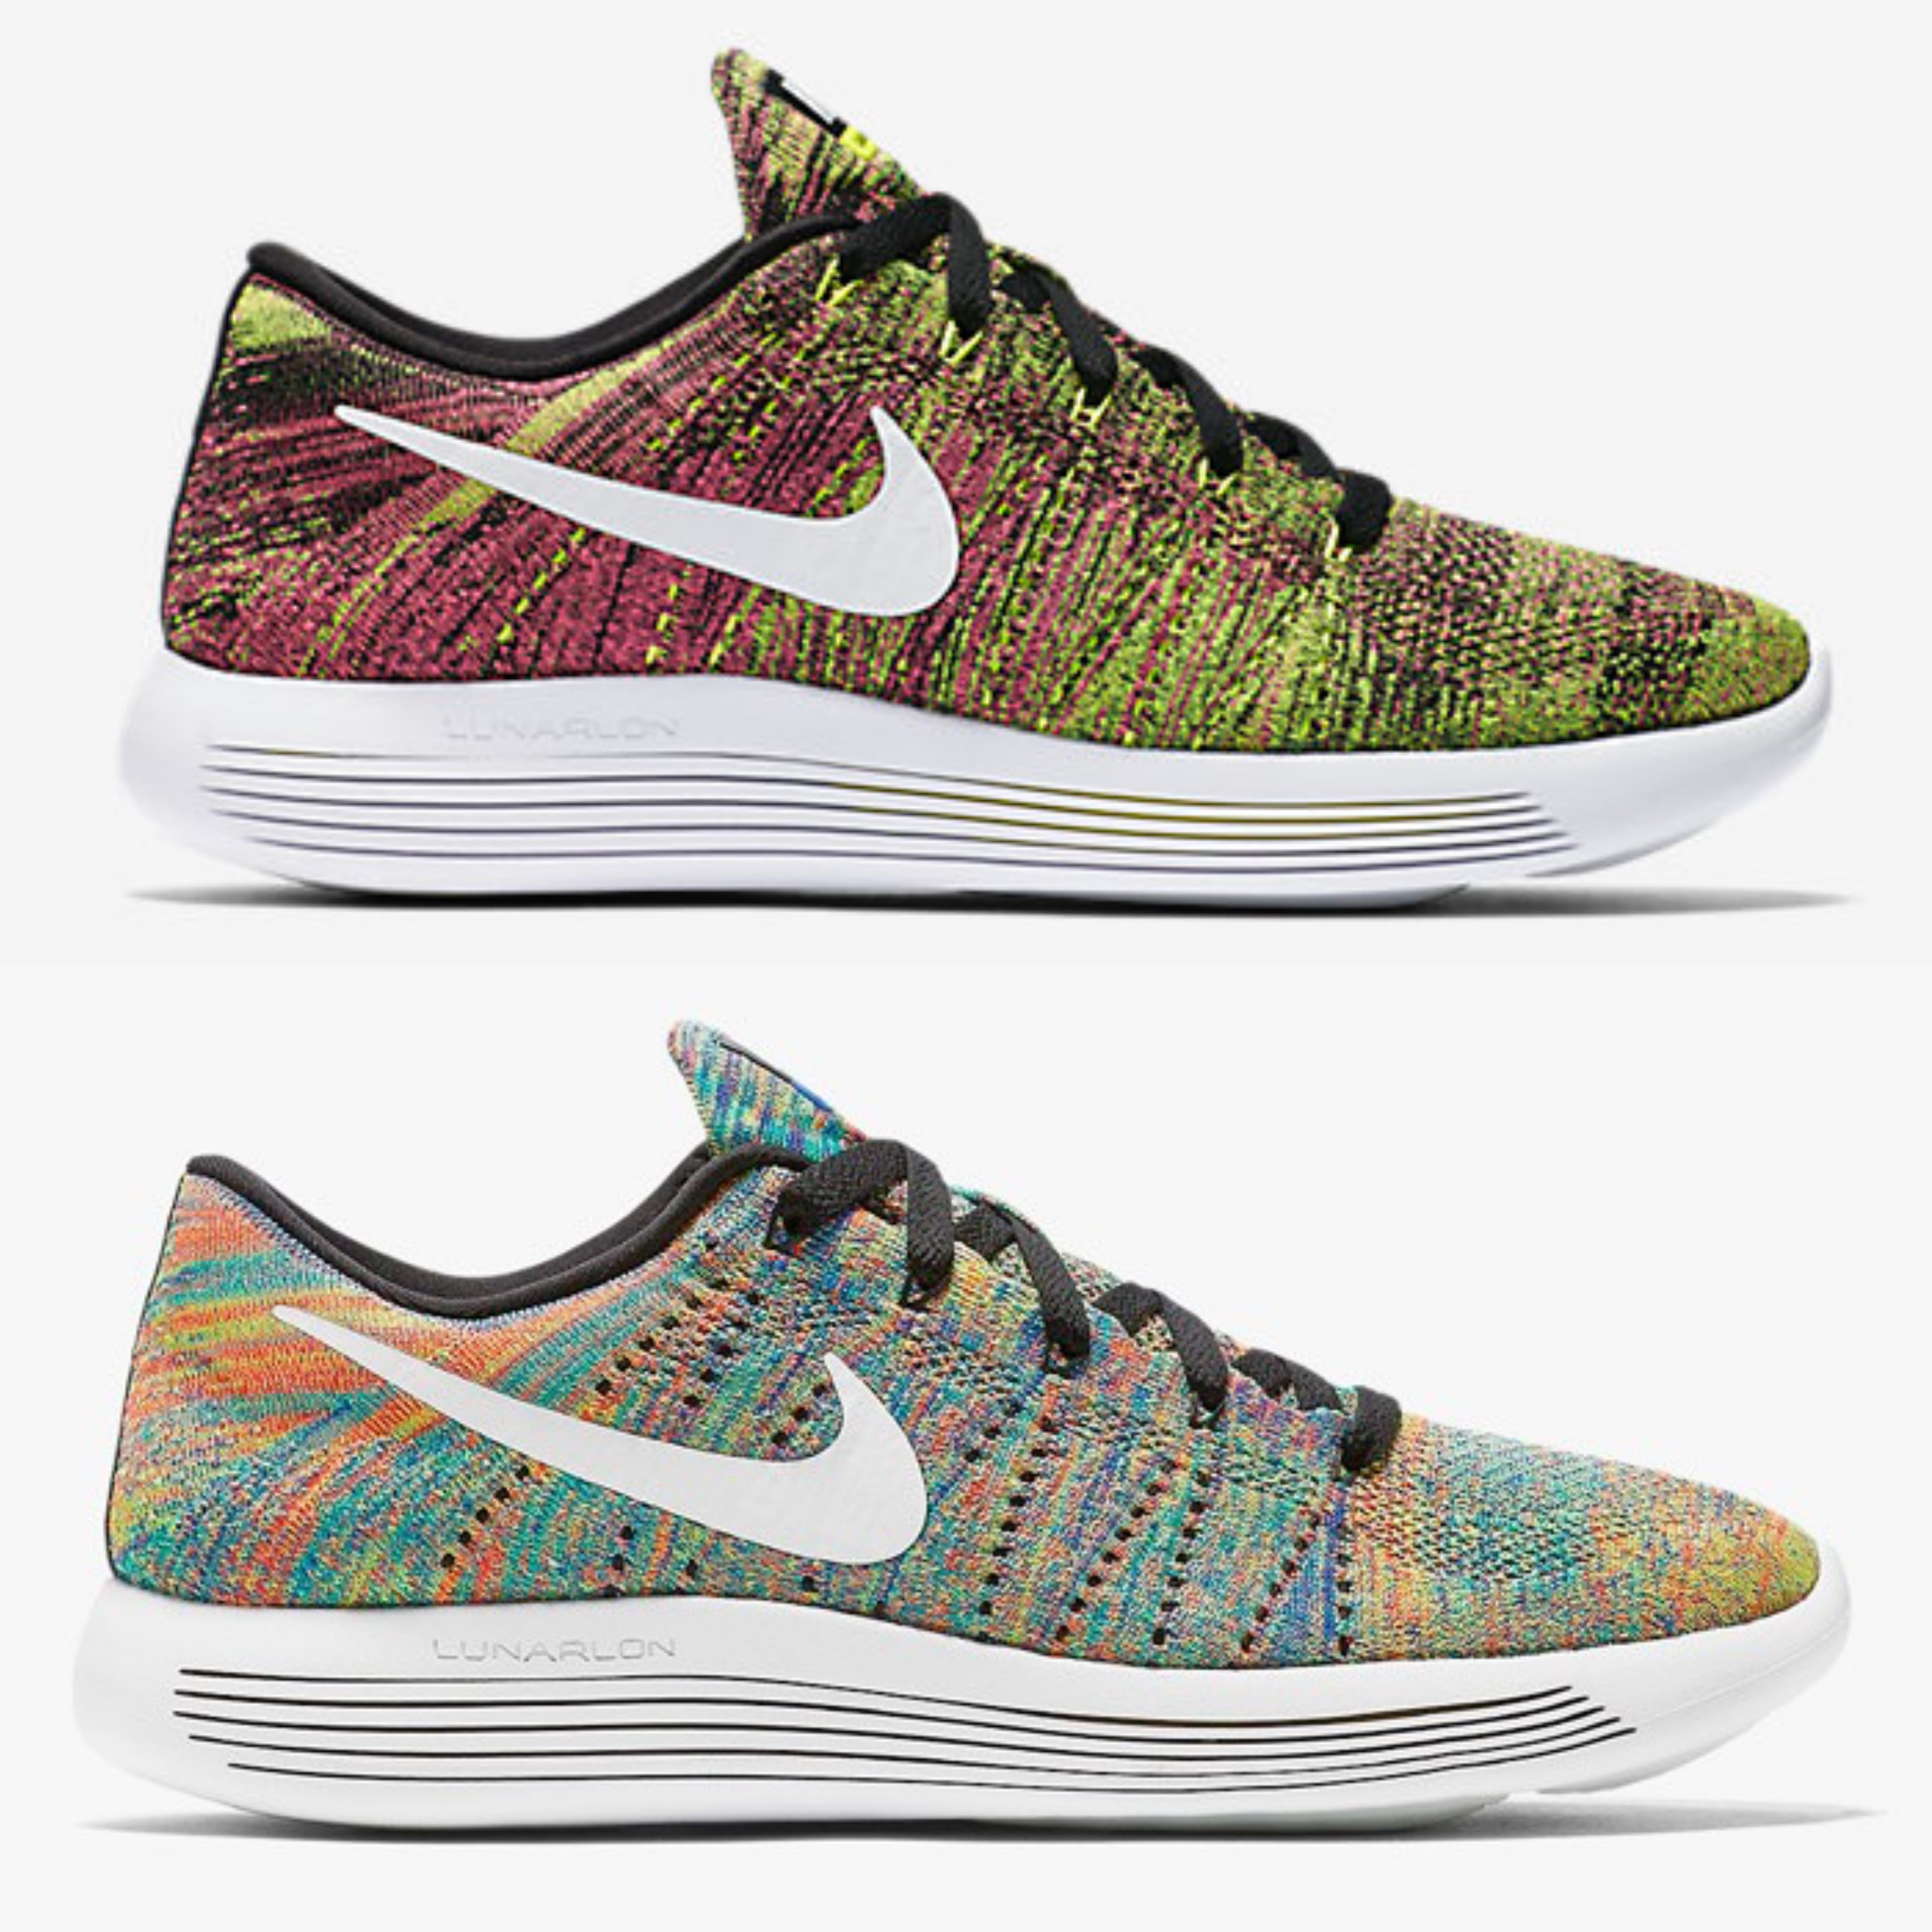 brand new 83d86 5bb78 ... Performance Running Deals Multicolor Nike Lunarepic Low Colorways .